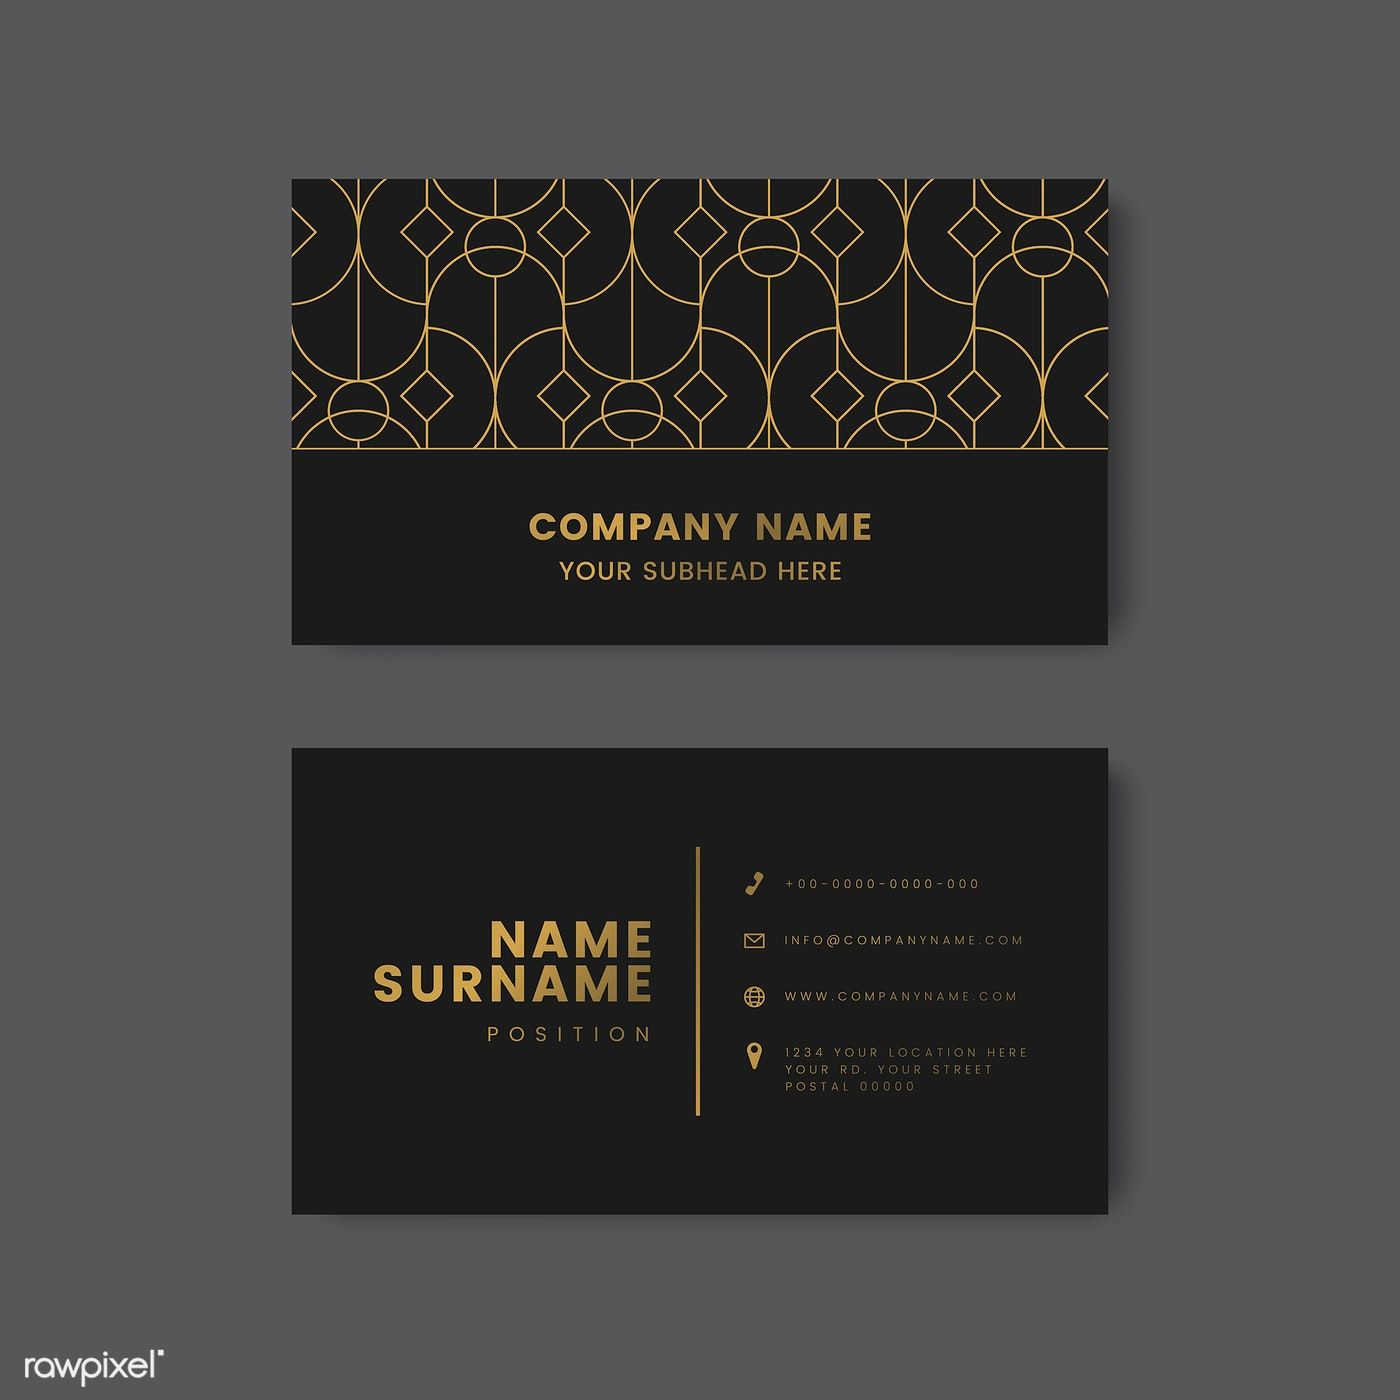 Golden Geometric Pattern On Black Business Card Vector Free Image By Rawpixel Com Man Vector Business Card Black Business Card Graphic Design Business Card